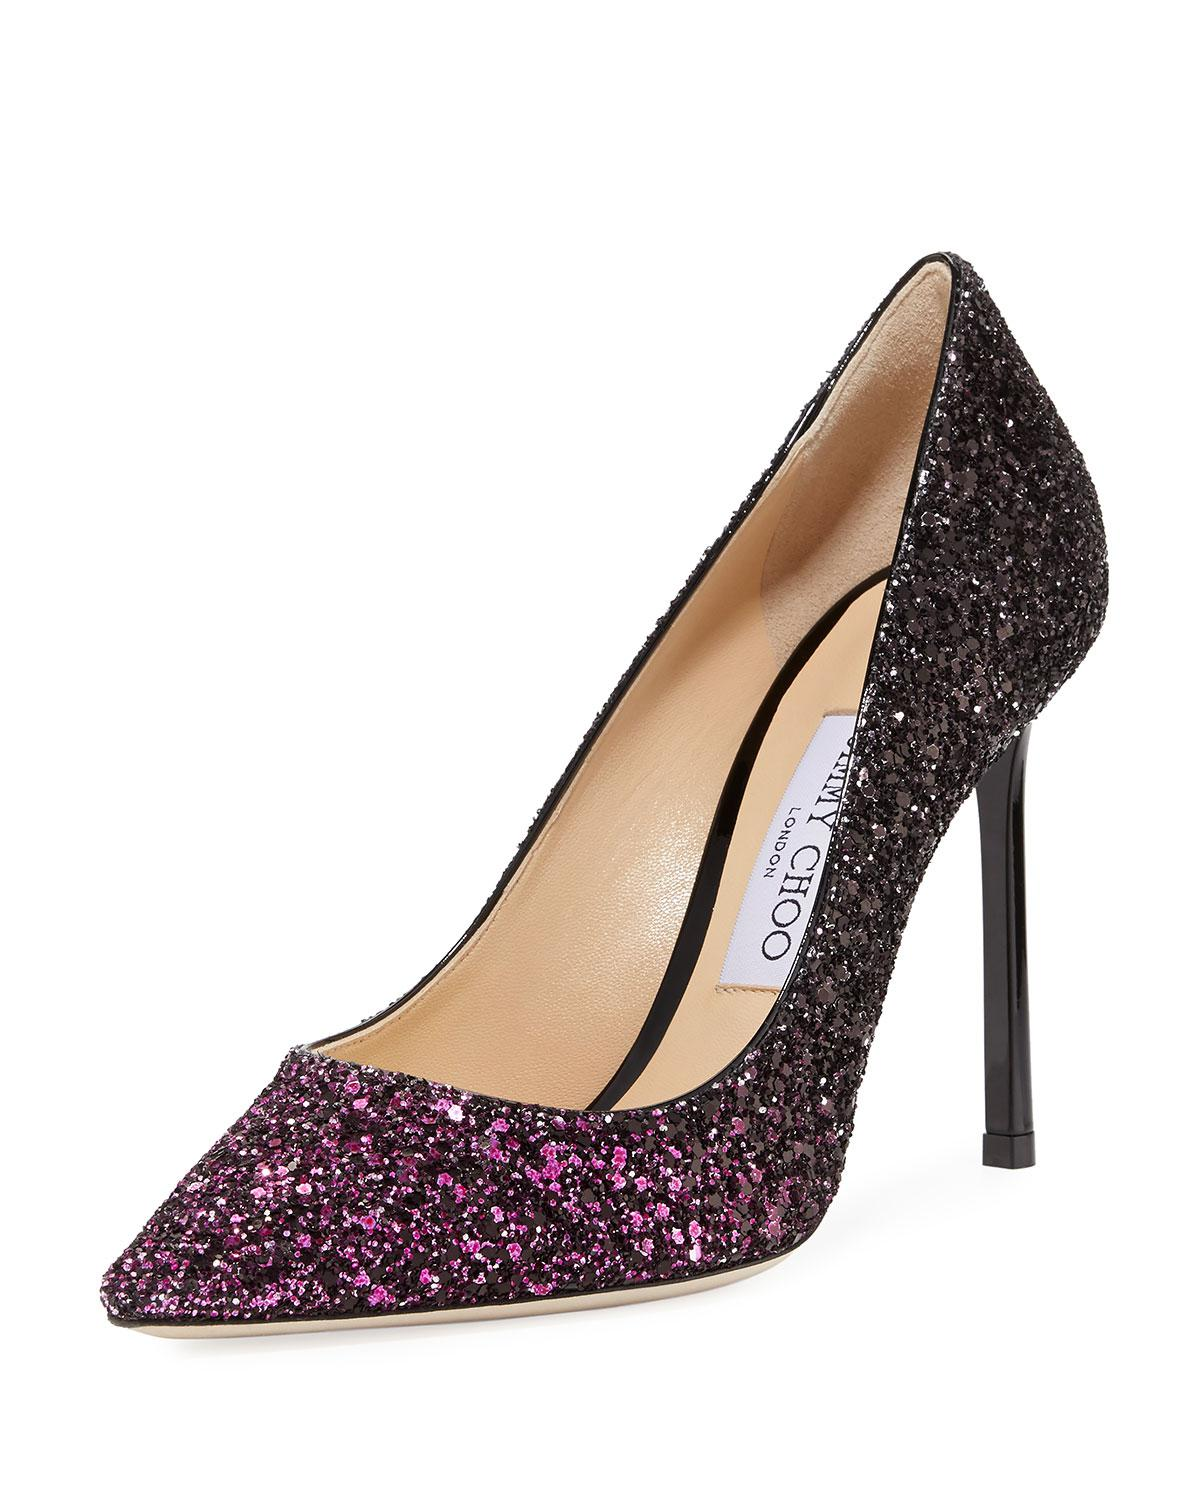 20ba4f77c04 Gallery. Previously sold at  Bergdorf Goodman · Women s Pointed Toe Pumps  Women s Jimmy Choo Glitter ...